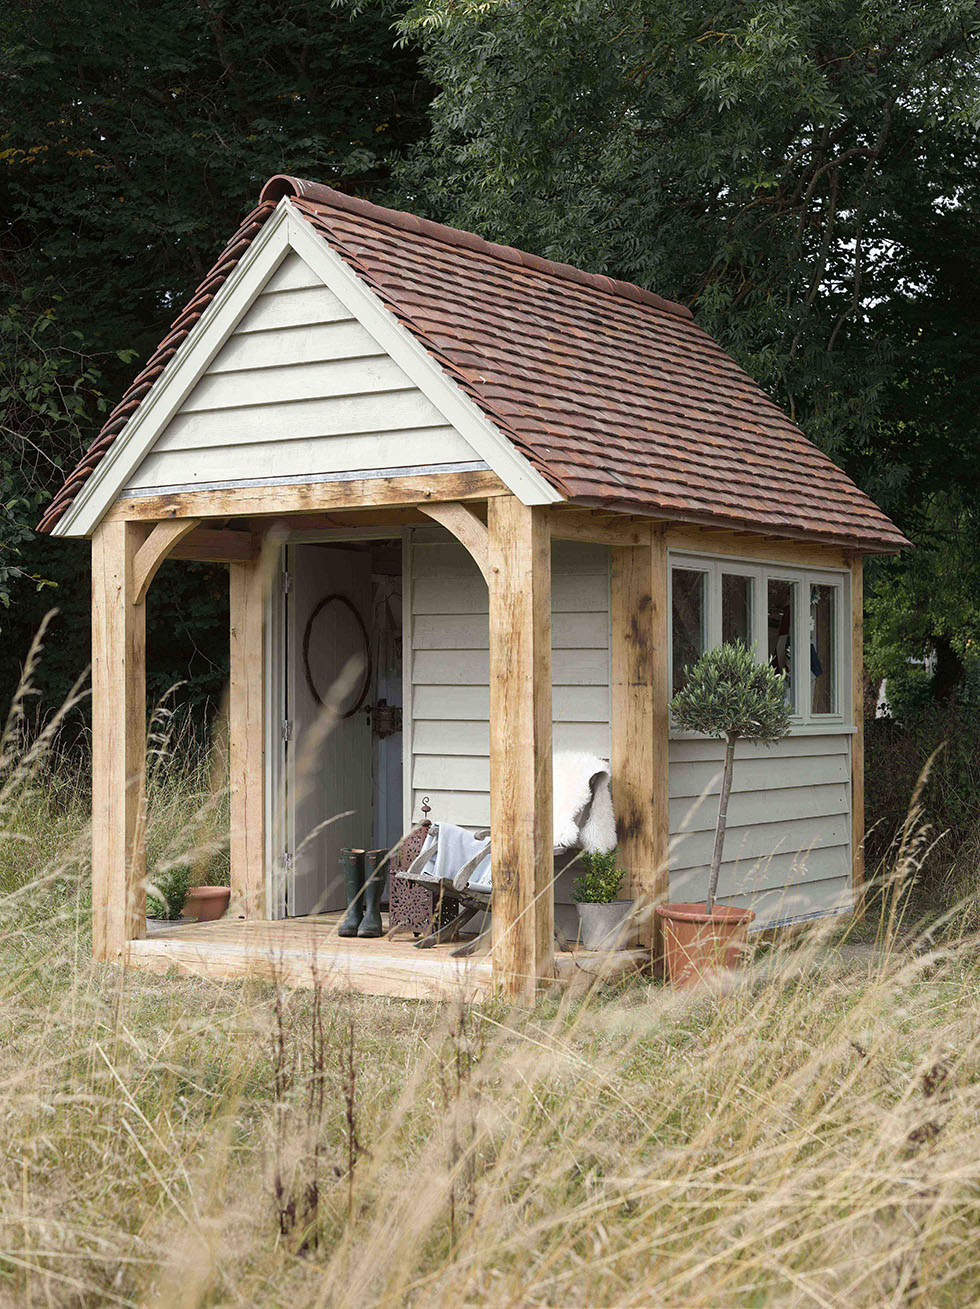 Garden Sheds Pics how to choose your garden shed - period living